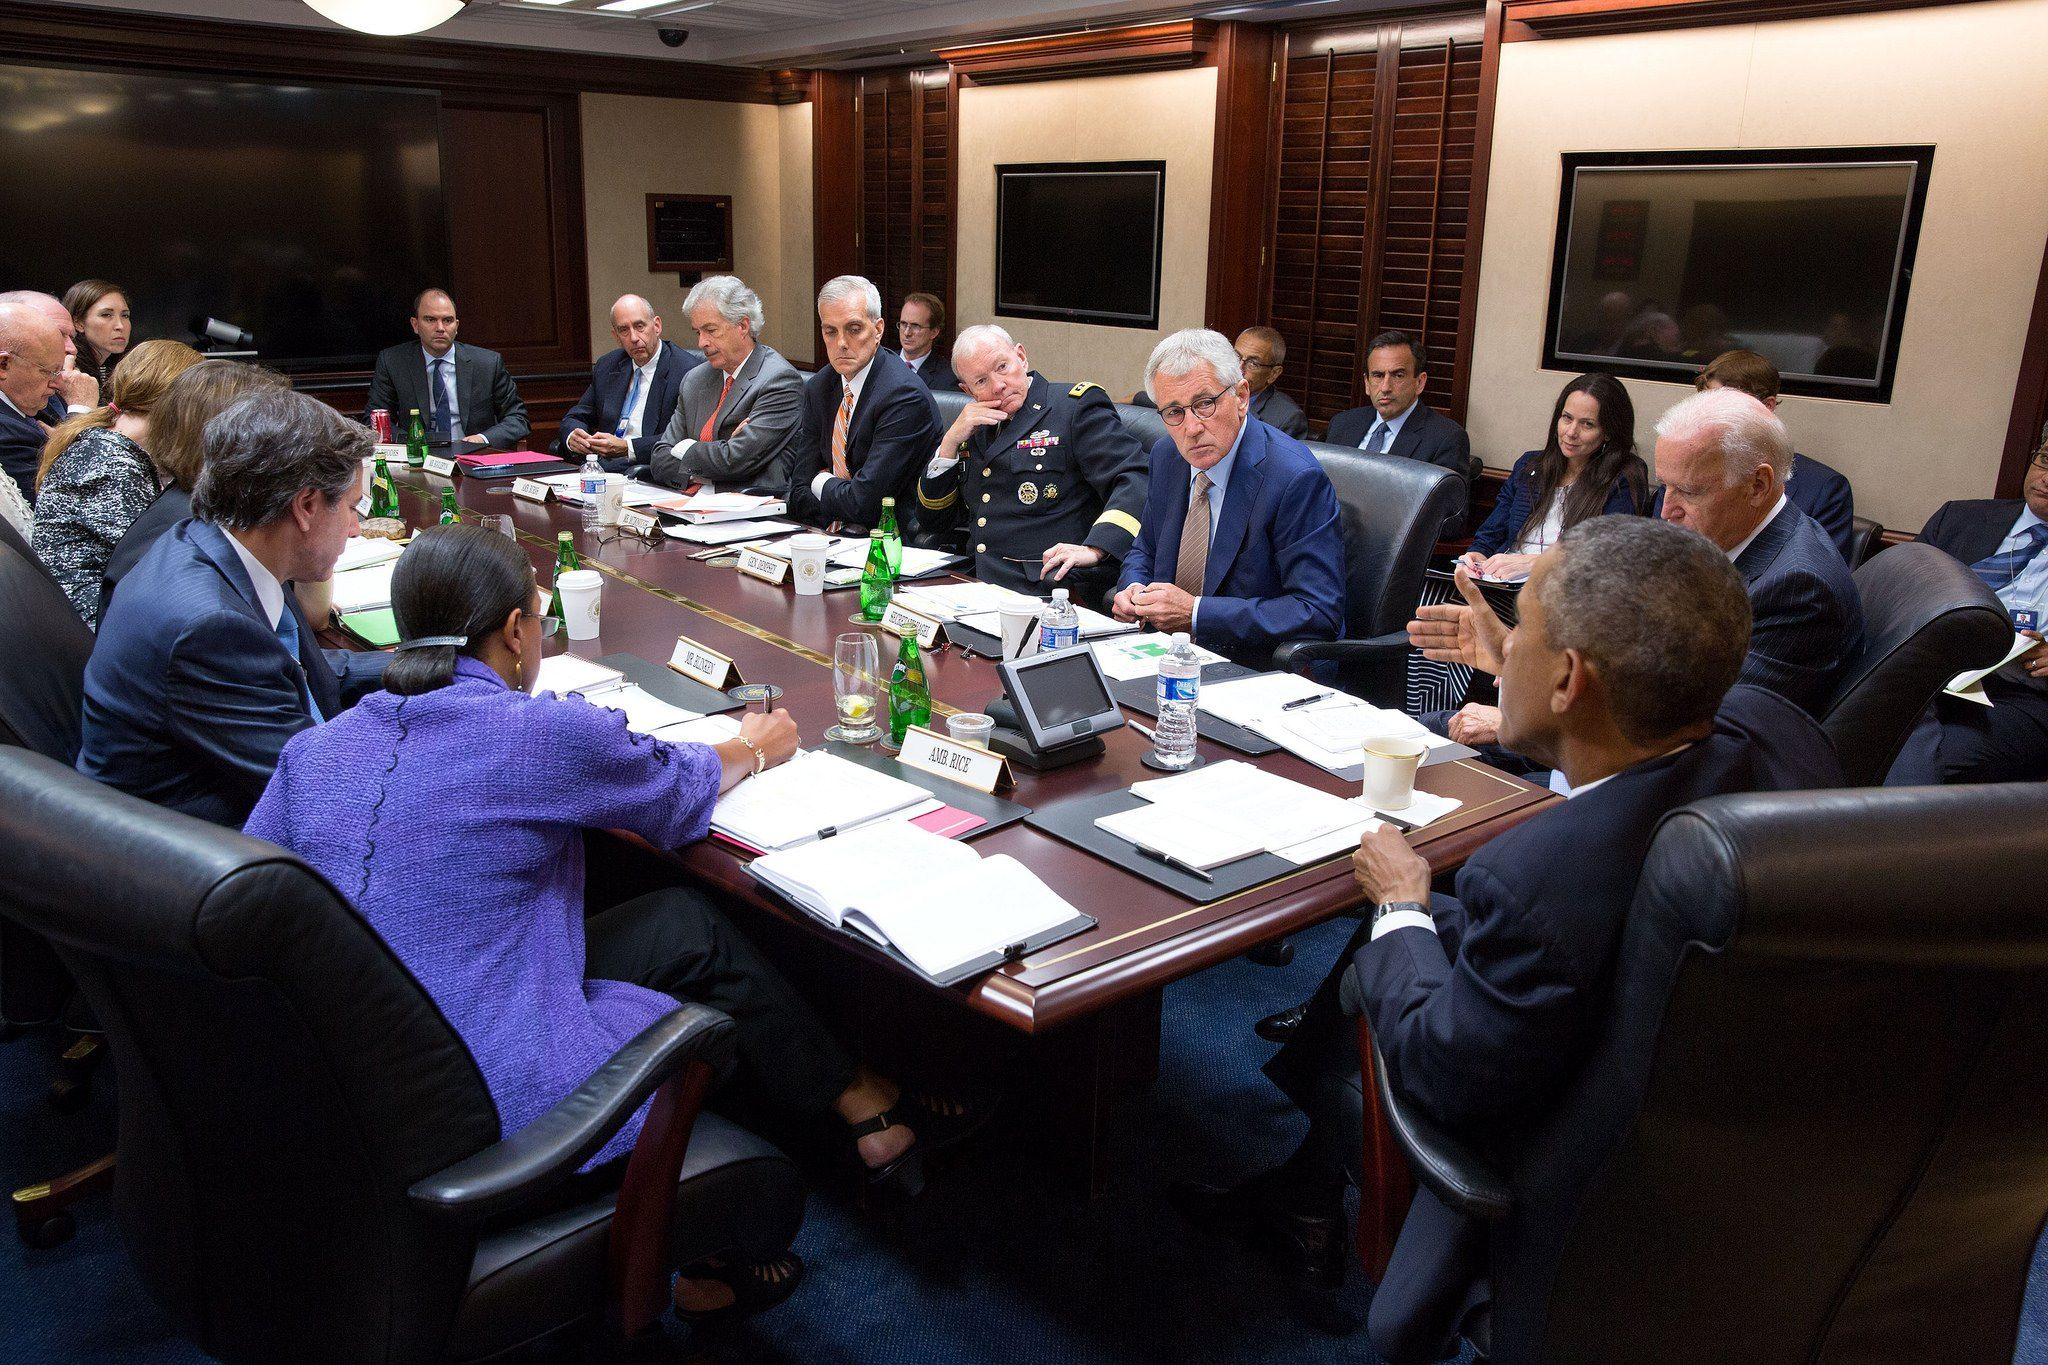 September 10, 2014 - President Obama meets with his national security team in the Situation Room to discuss strategy against ISIS - White House Photo by Pete Souza.